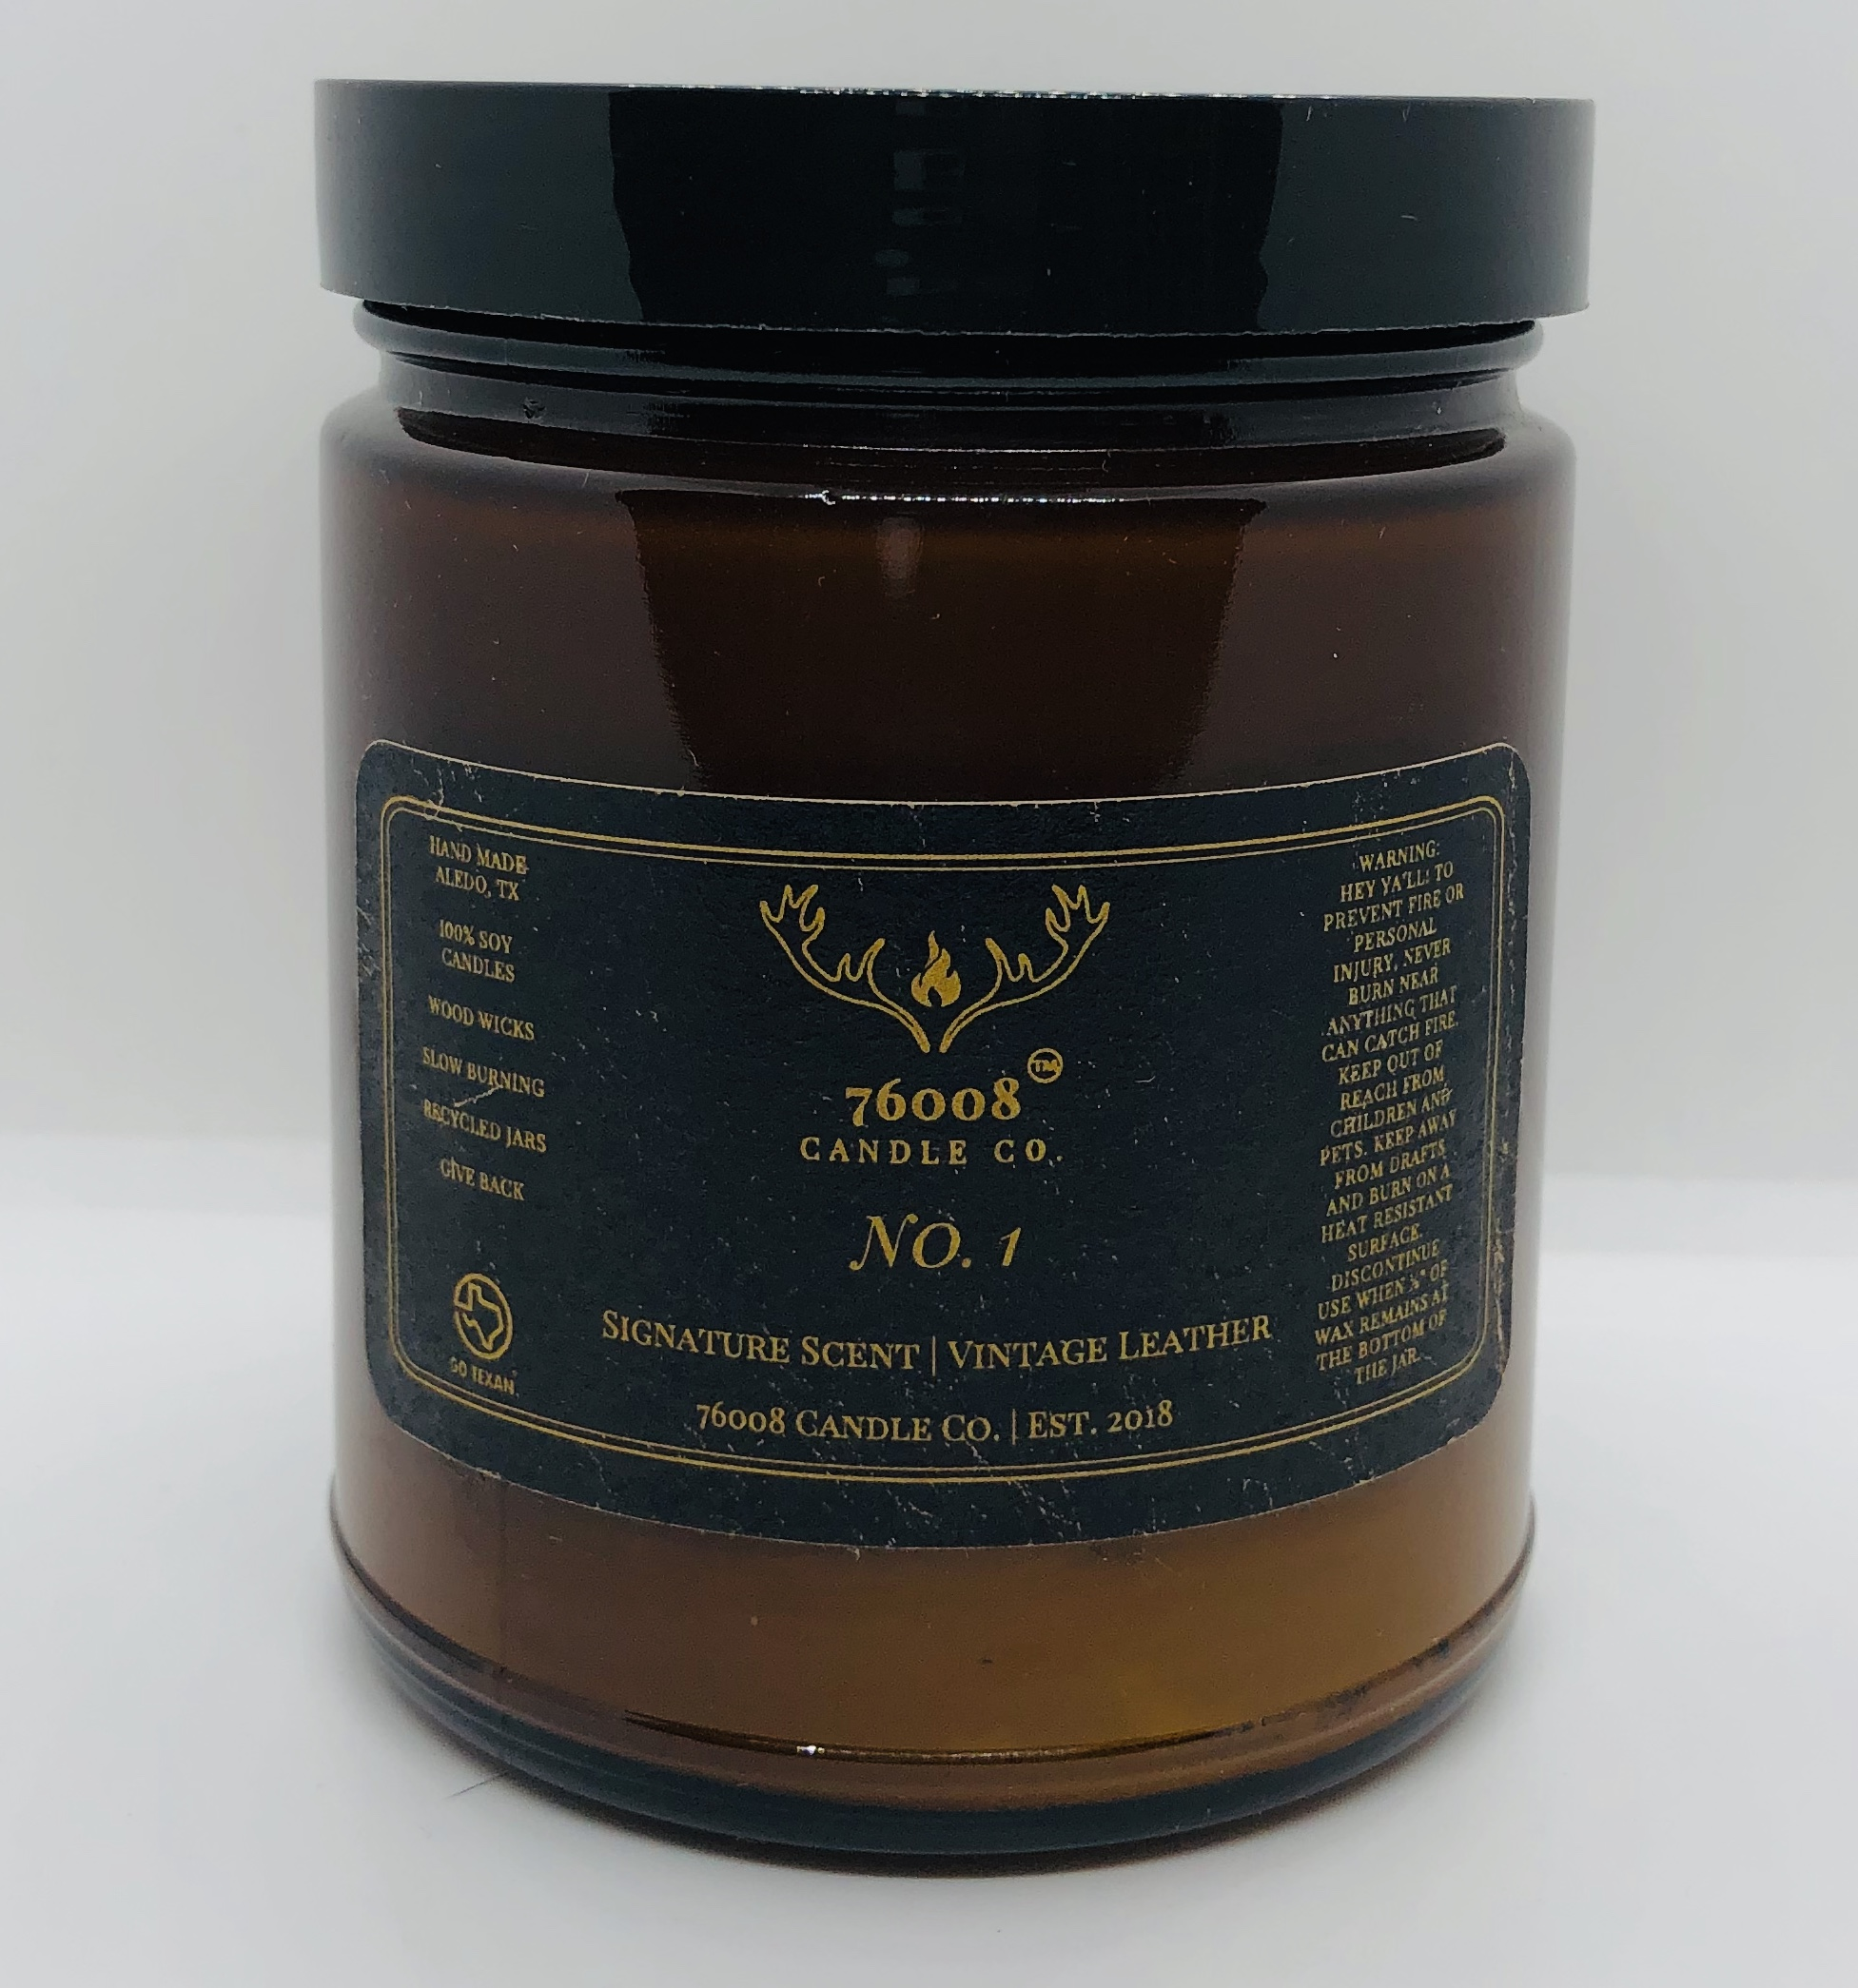 Vintage Leather No. 1 - 76008 Candle Co. - Soy Candle - 8 oz